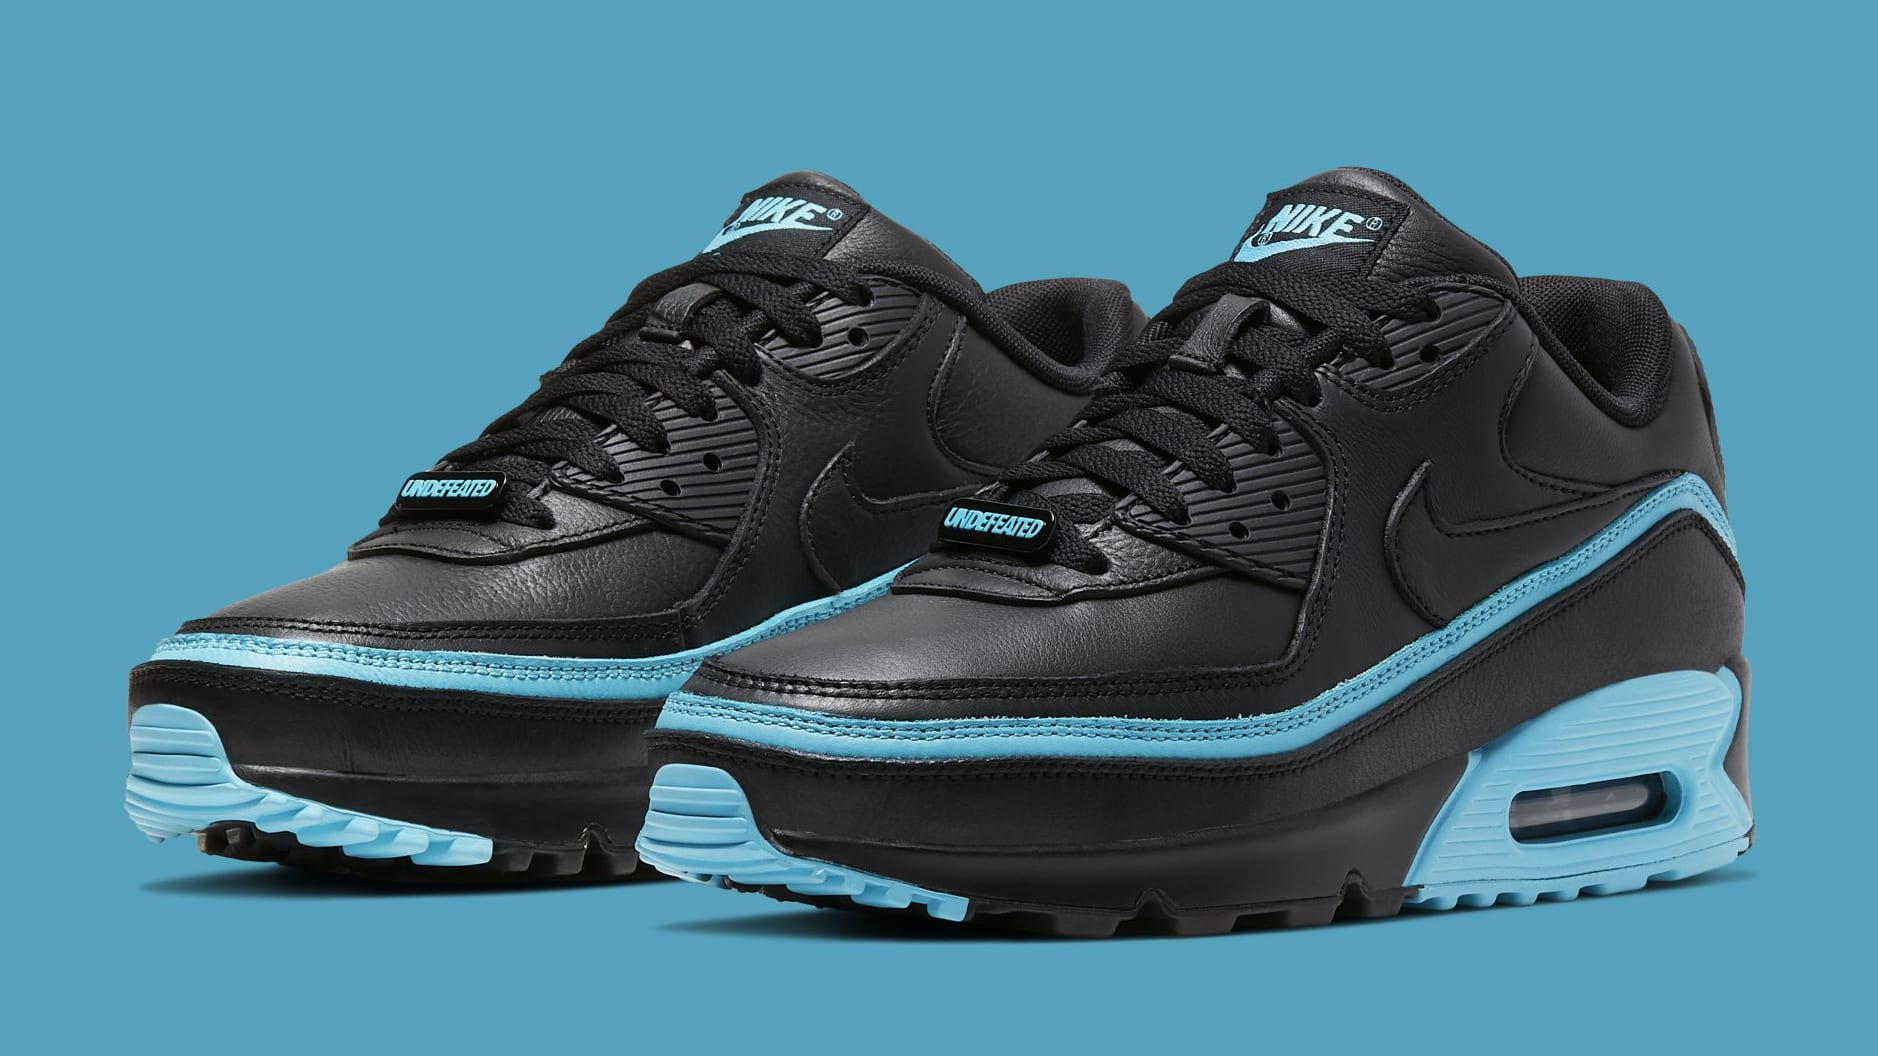 undefeated-nike-air-max-90-black-blue-fury-cj7197-002-pair